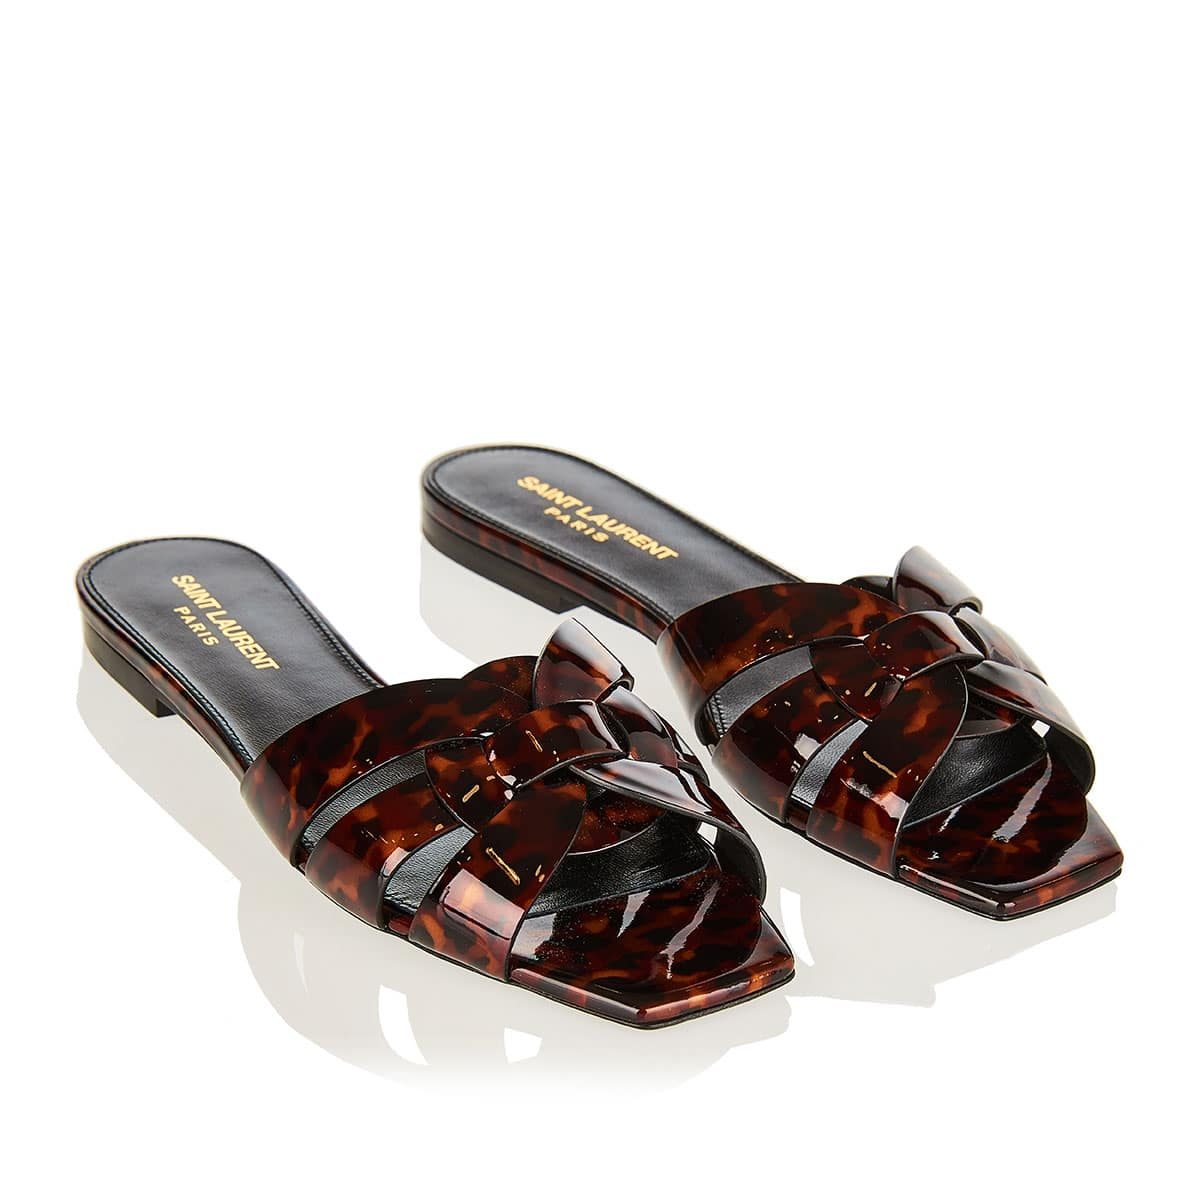 Tribute tortoiseshell flat sandals